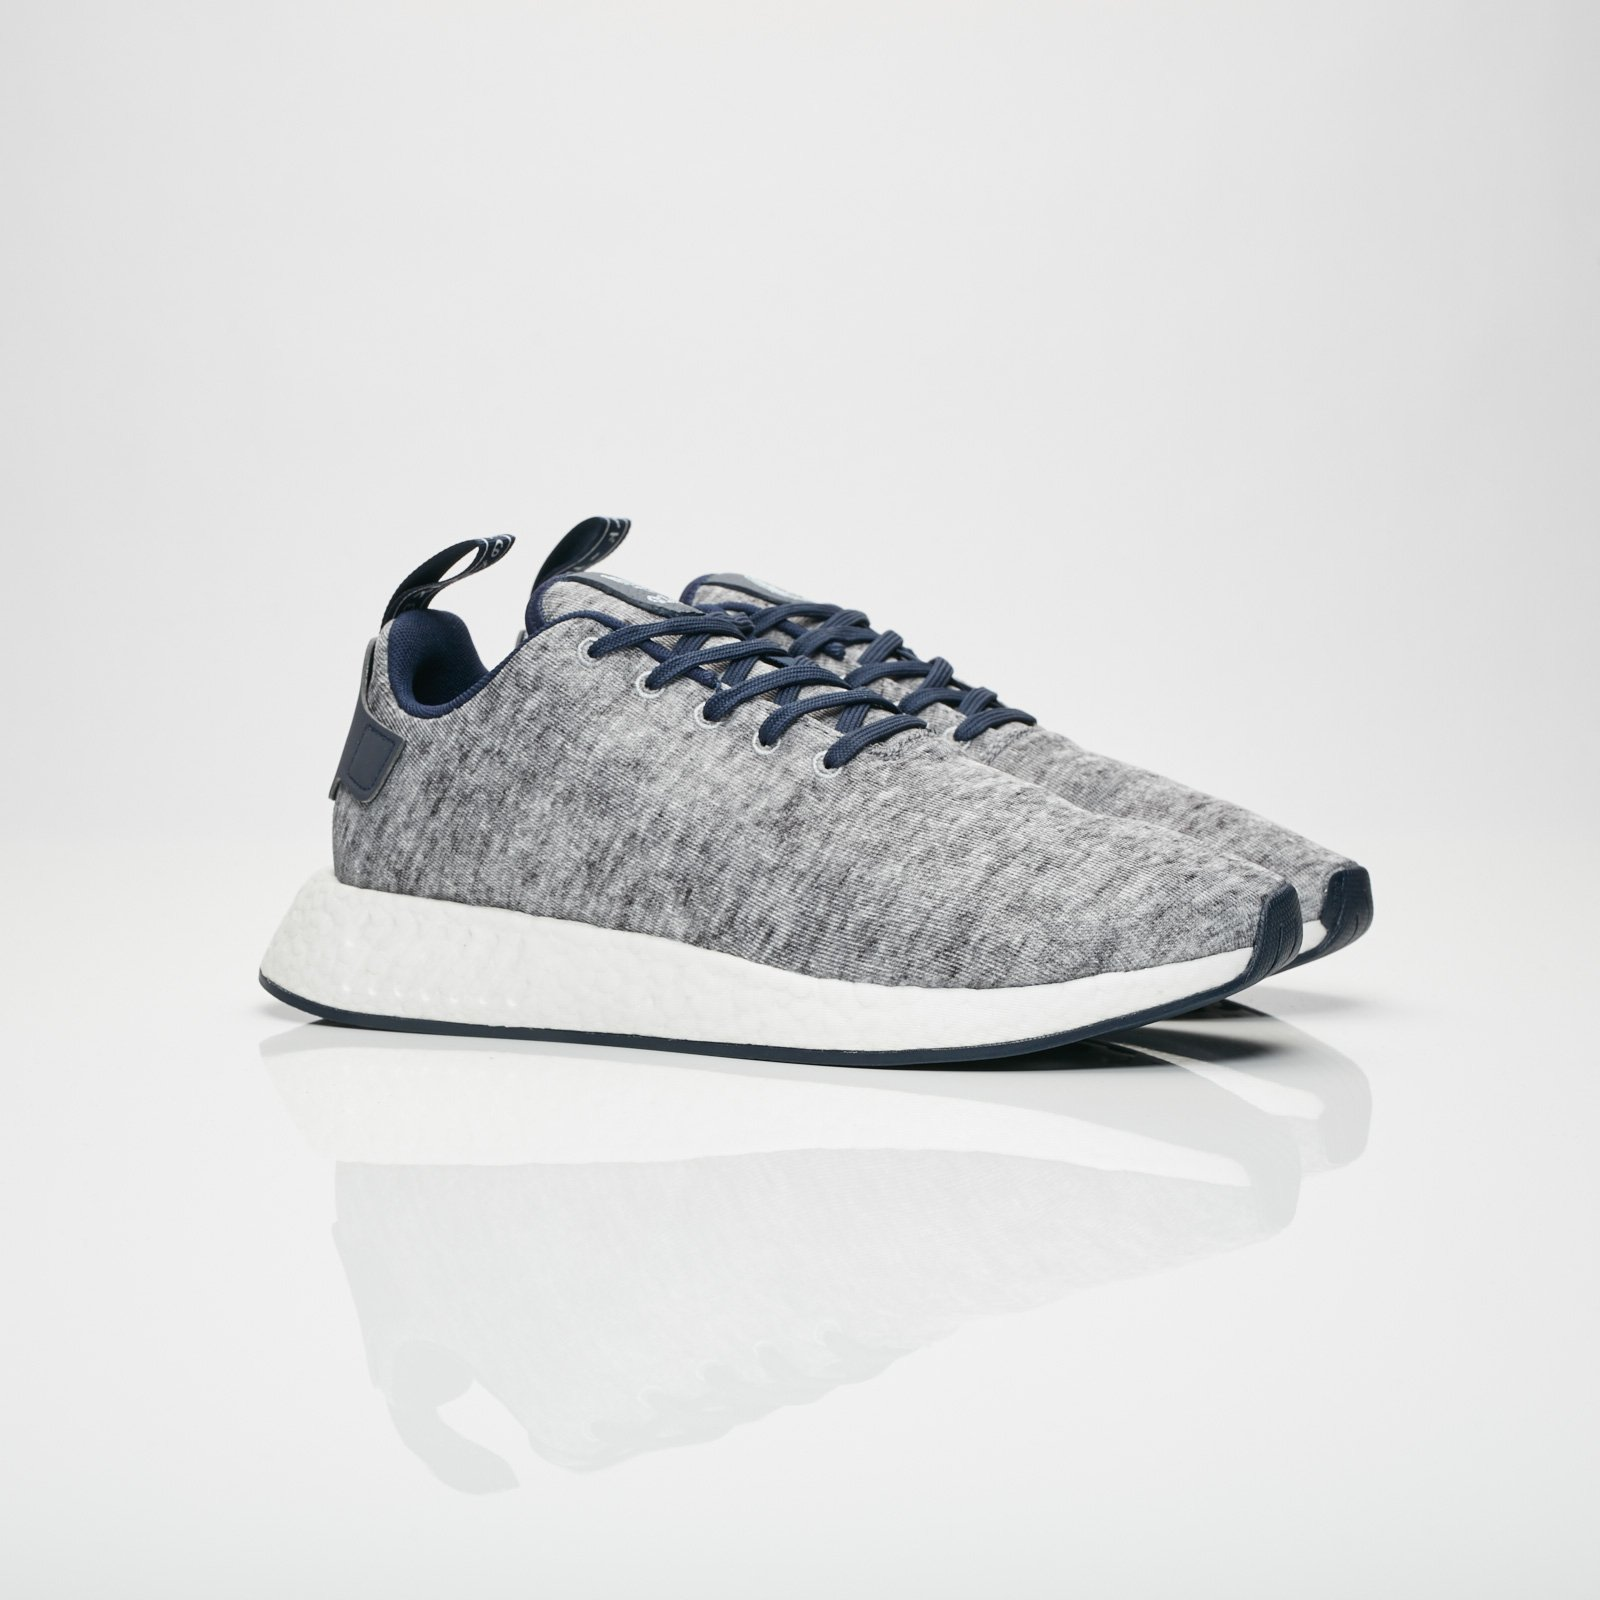 new arrival 7c150 9d909 adidas NMD R2 x United Arrows & Sons - Da8834 ...